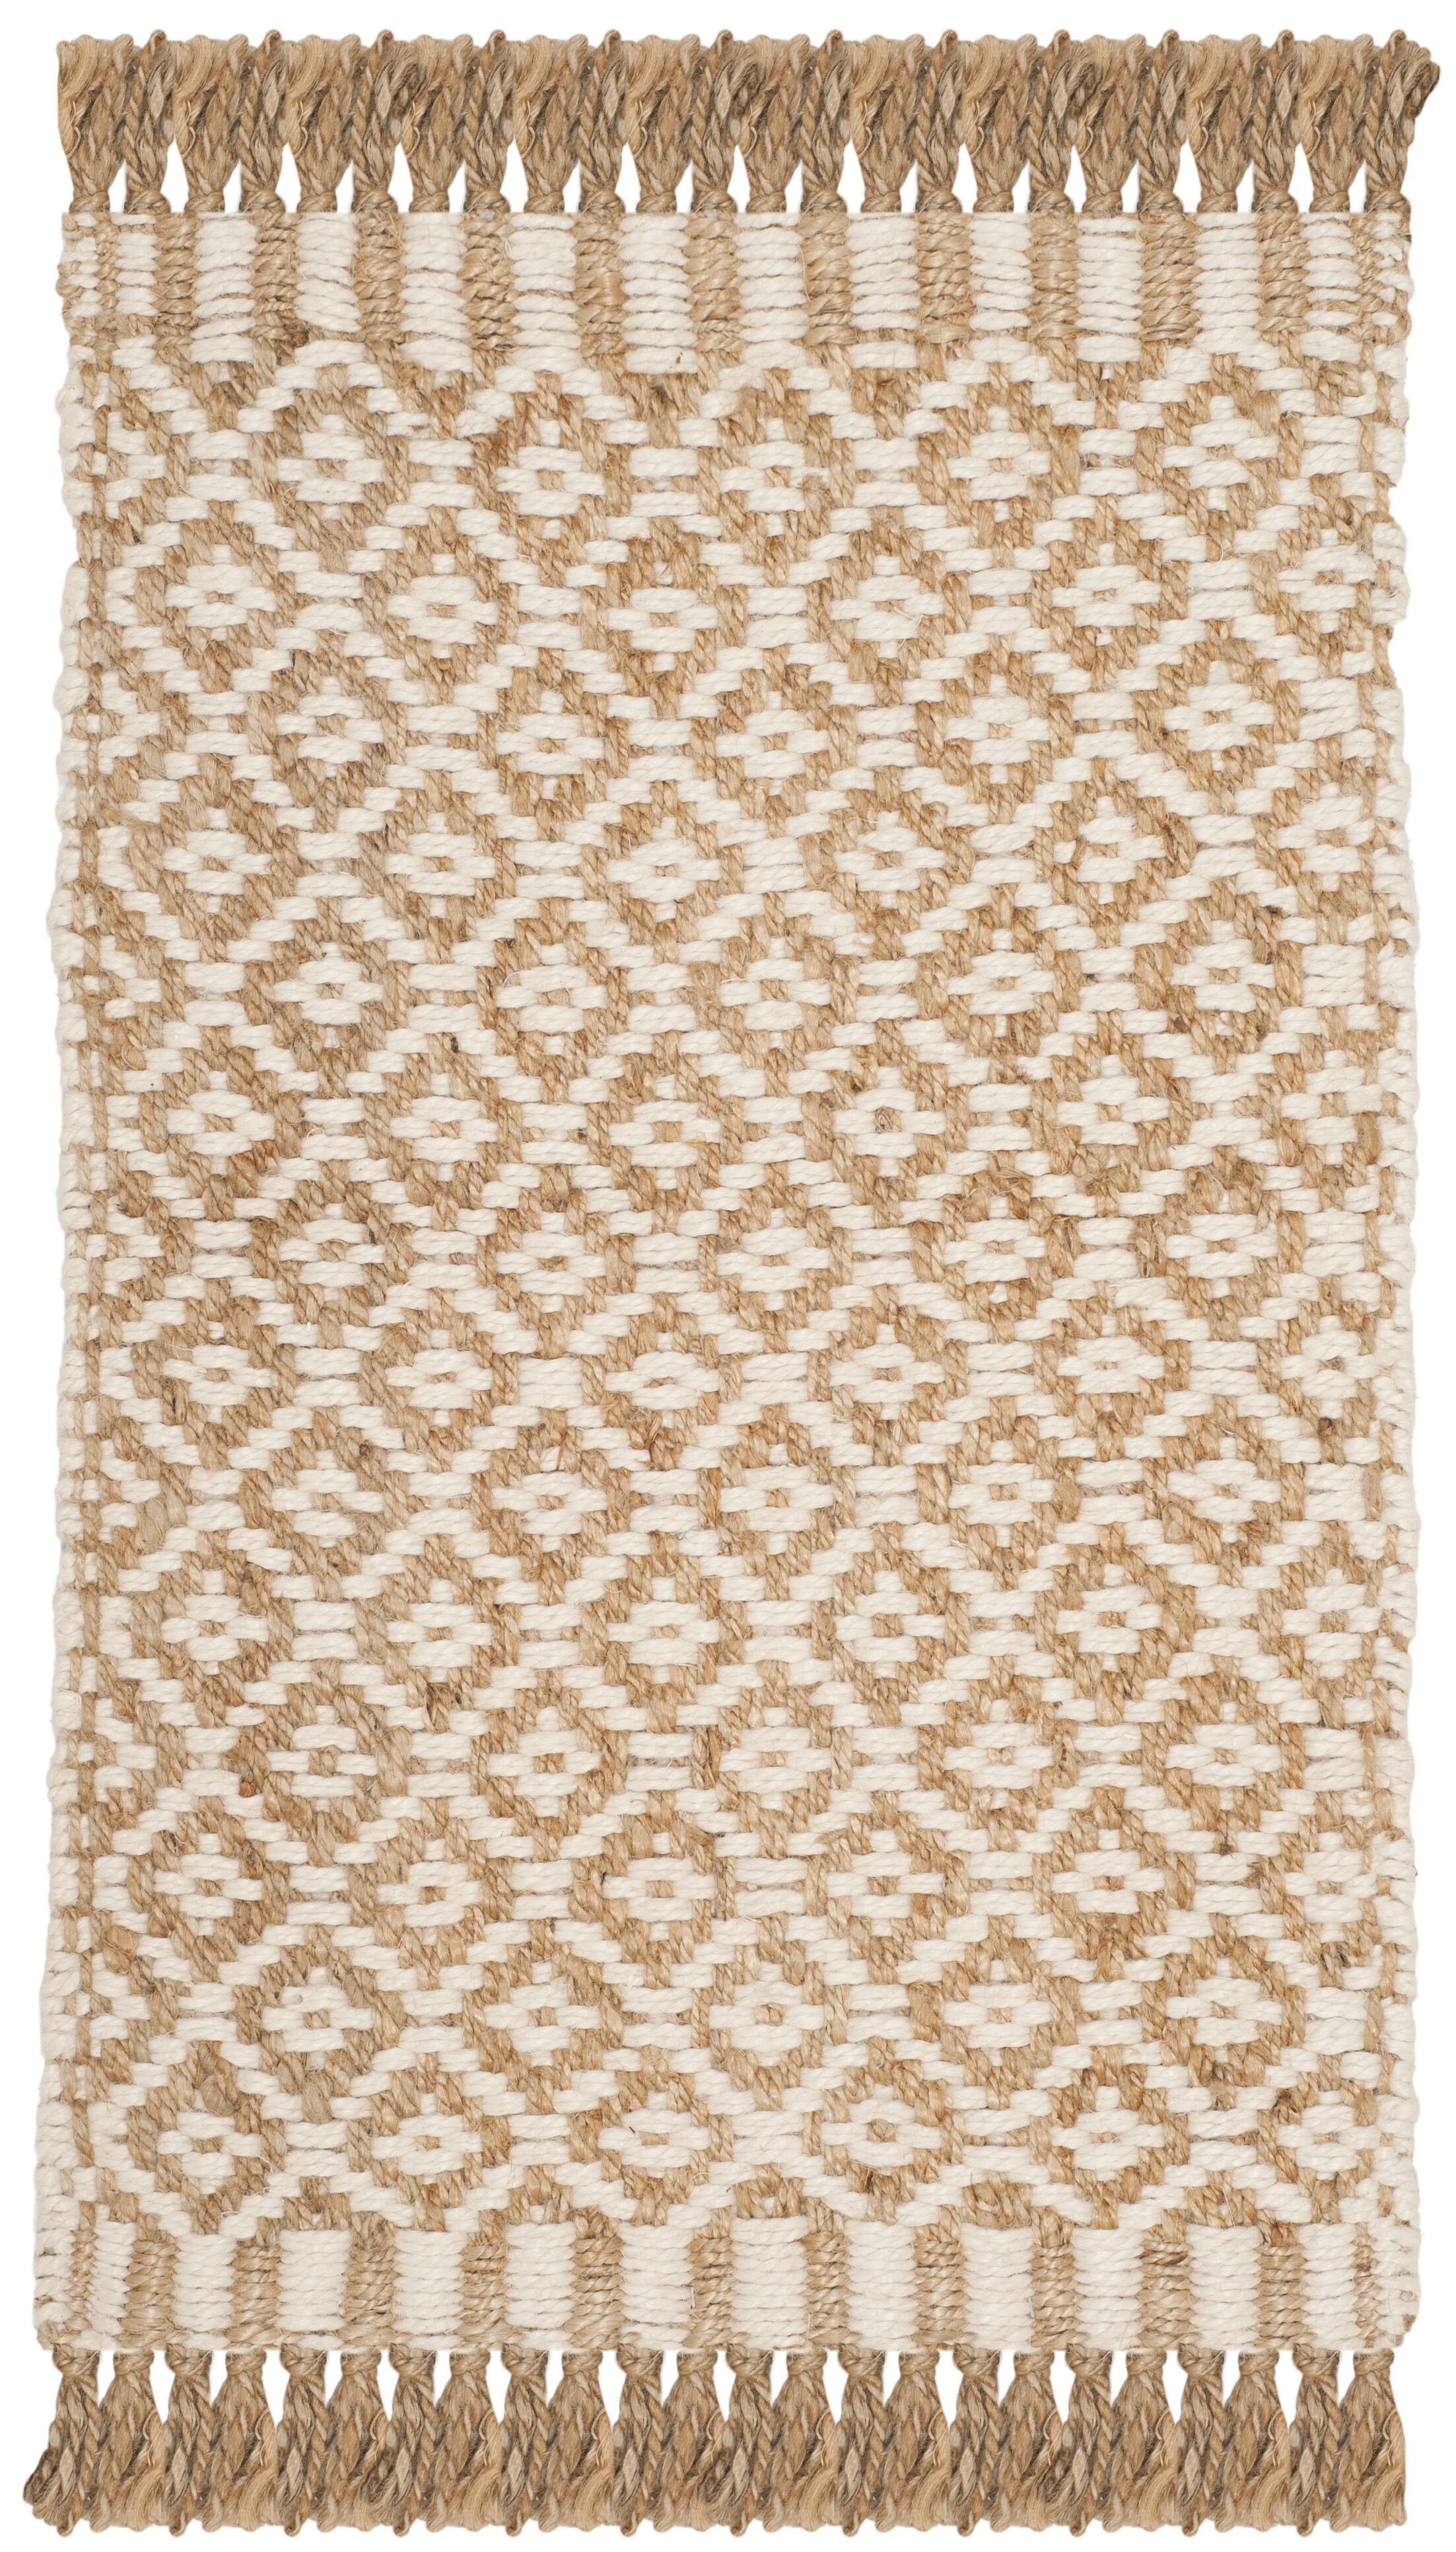 Nicholson Fiber Hand-Woven Natural/Ivory Area Rug Rug Size: Rectangle 9' x 12'